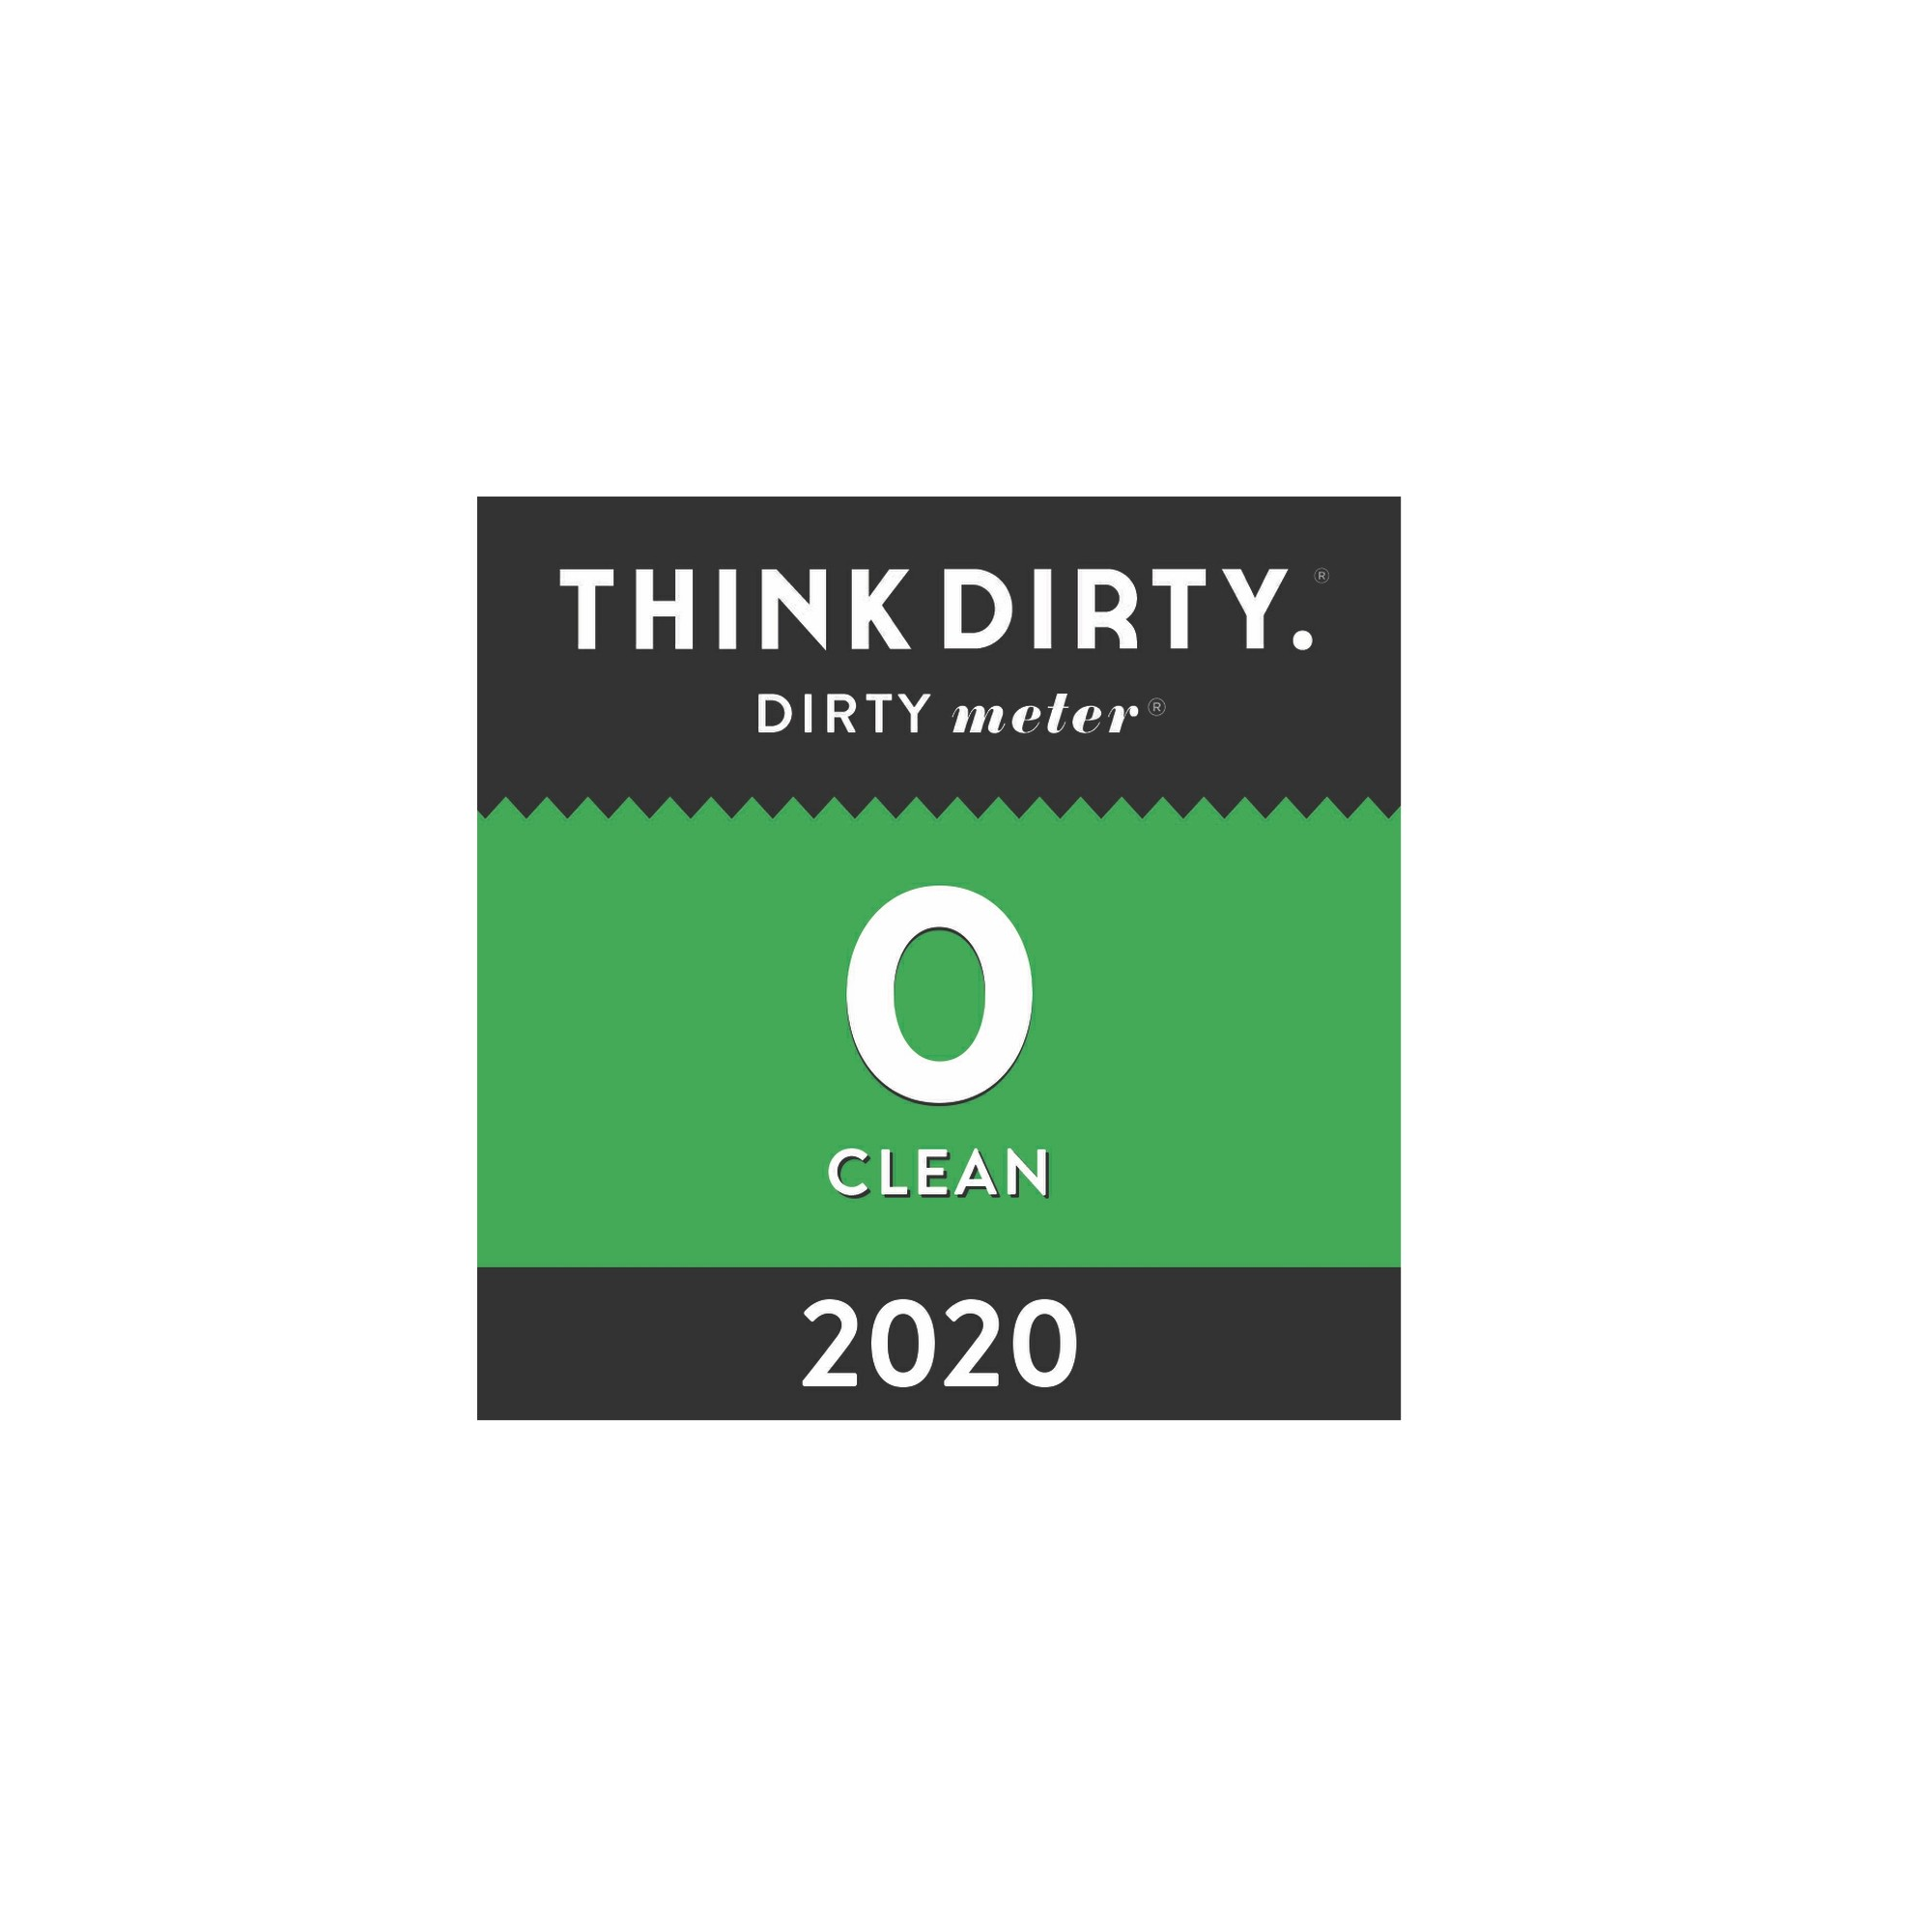 Rated Clean in the Think Dirty app